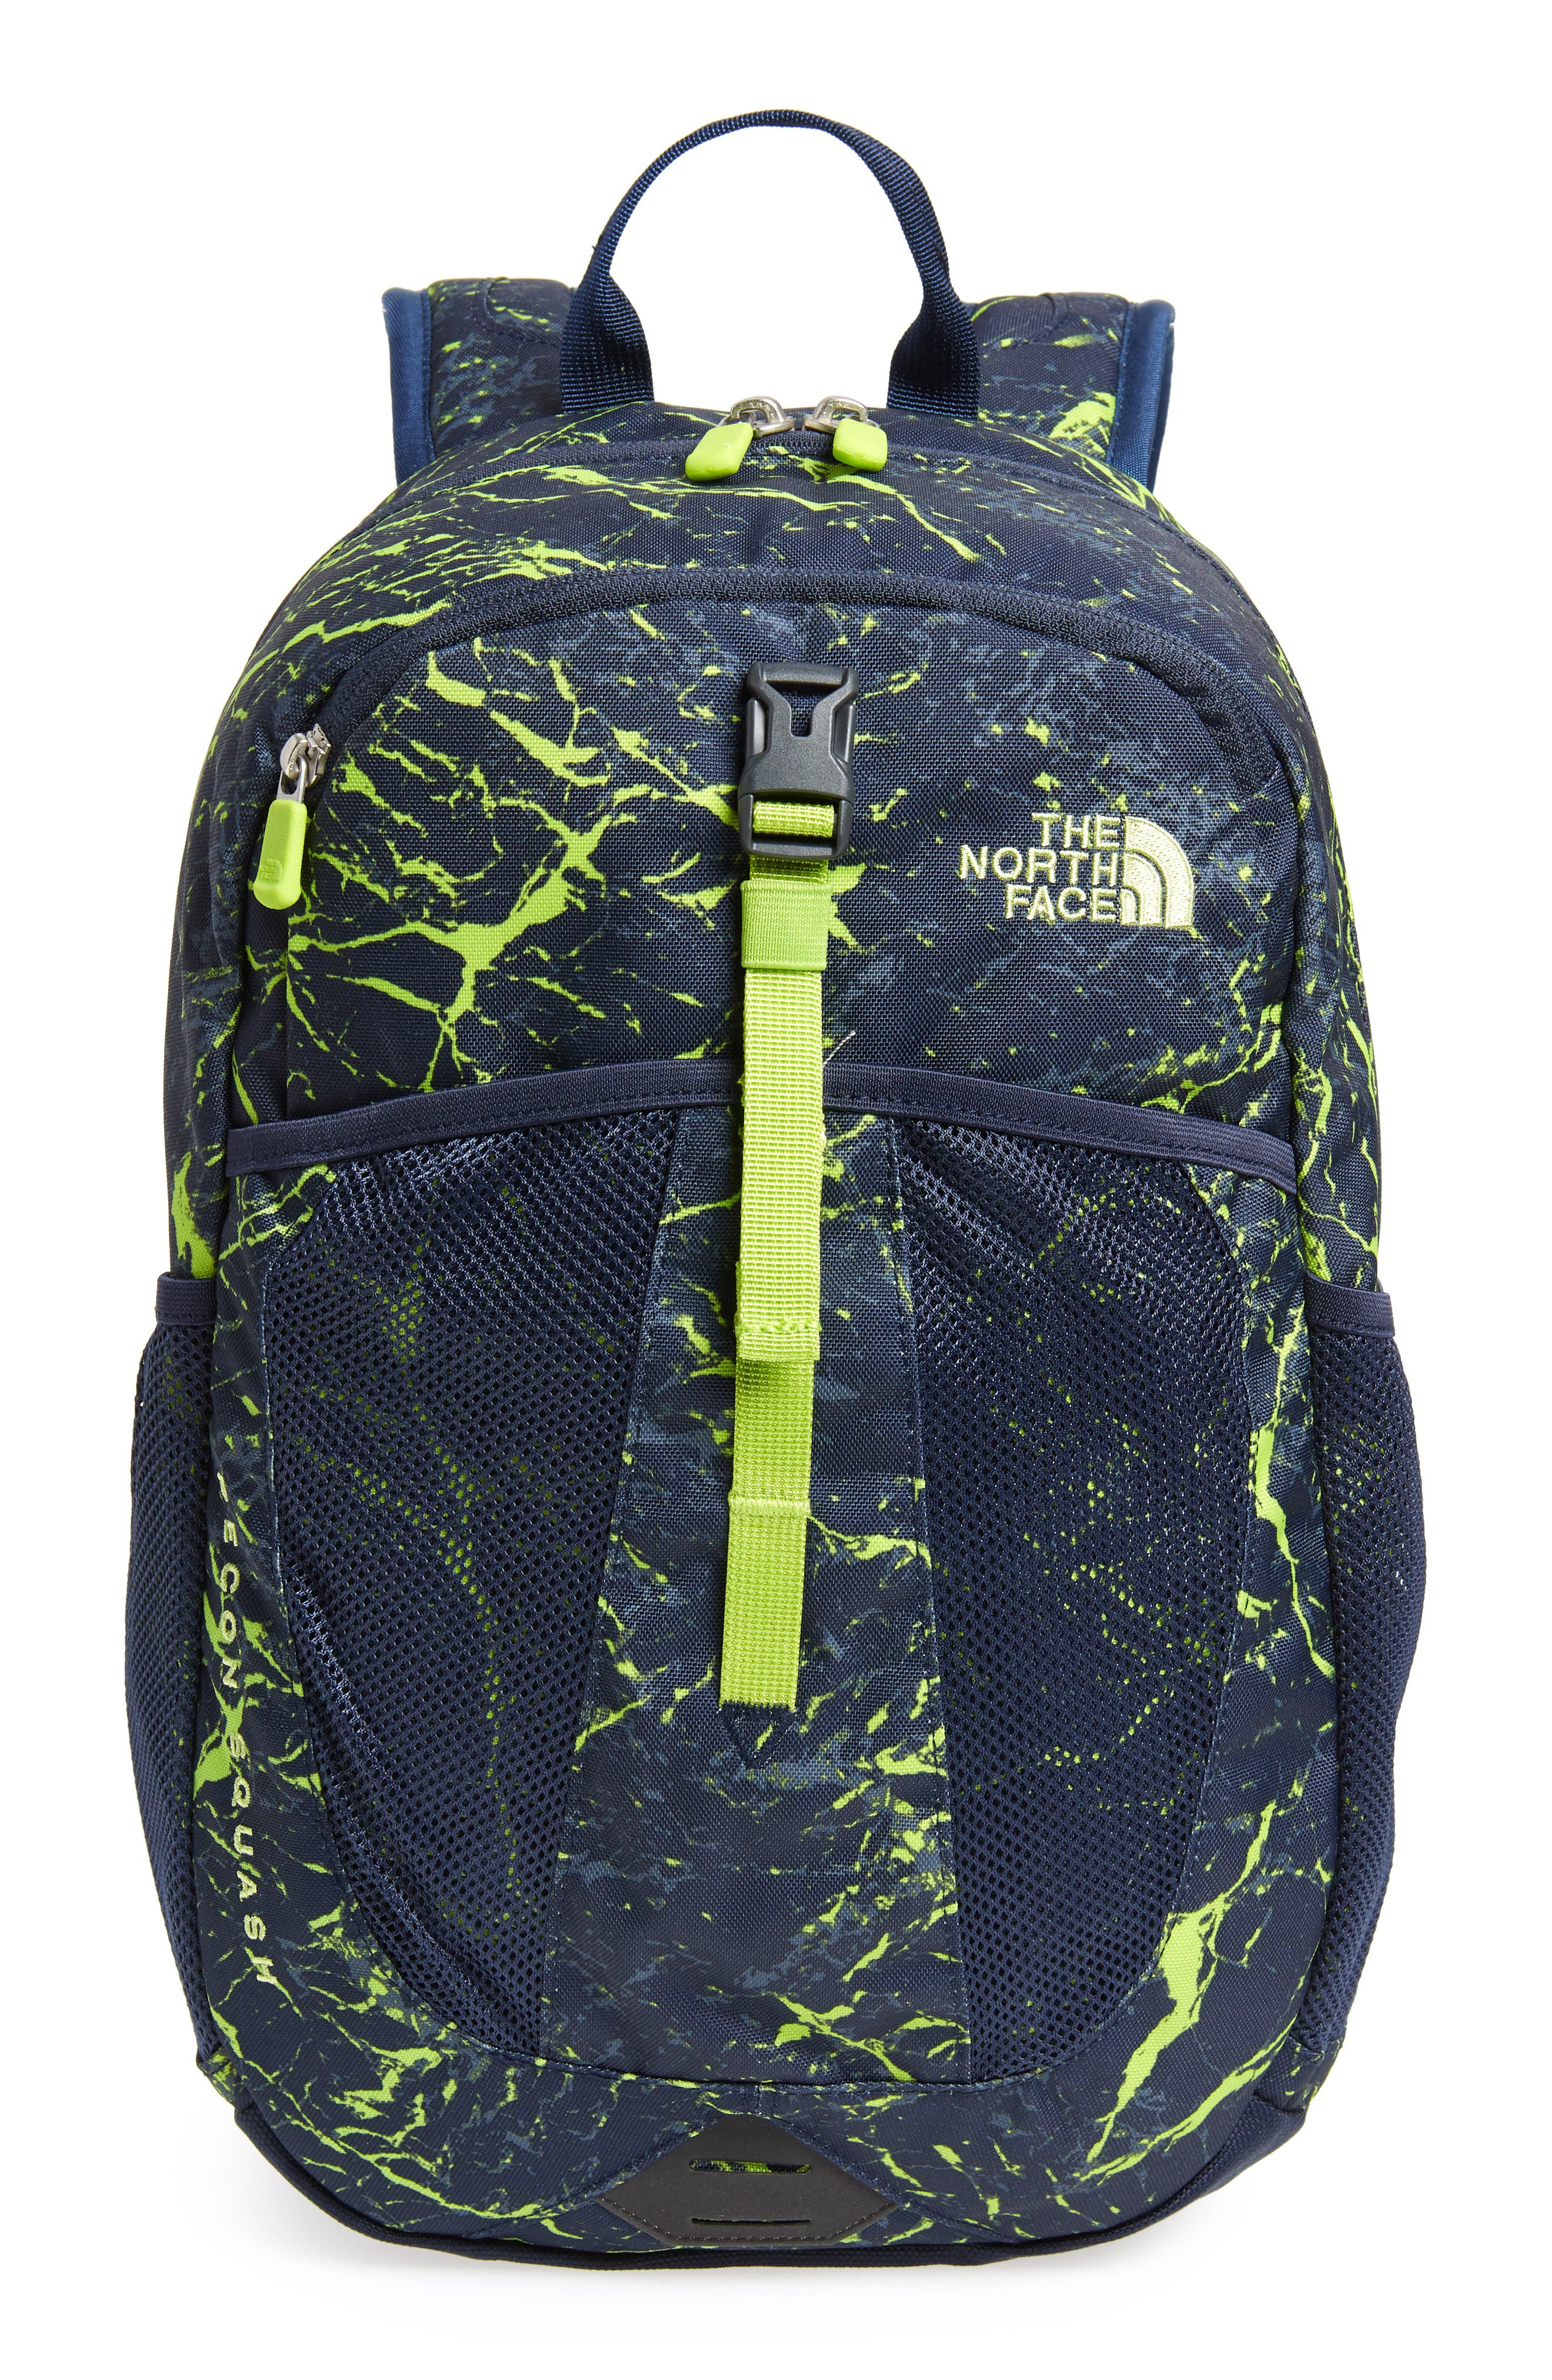 Recon Squash Backpack,                             Main thumbnail 1, color,                             401